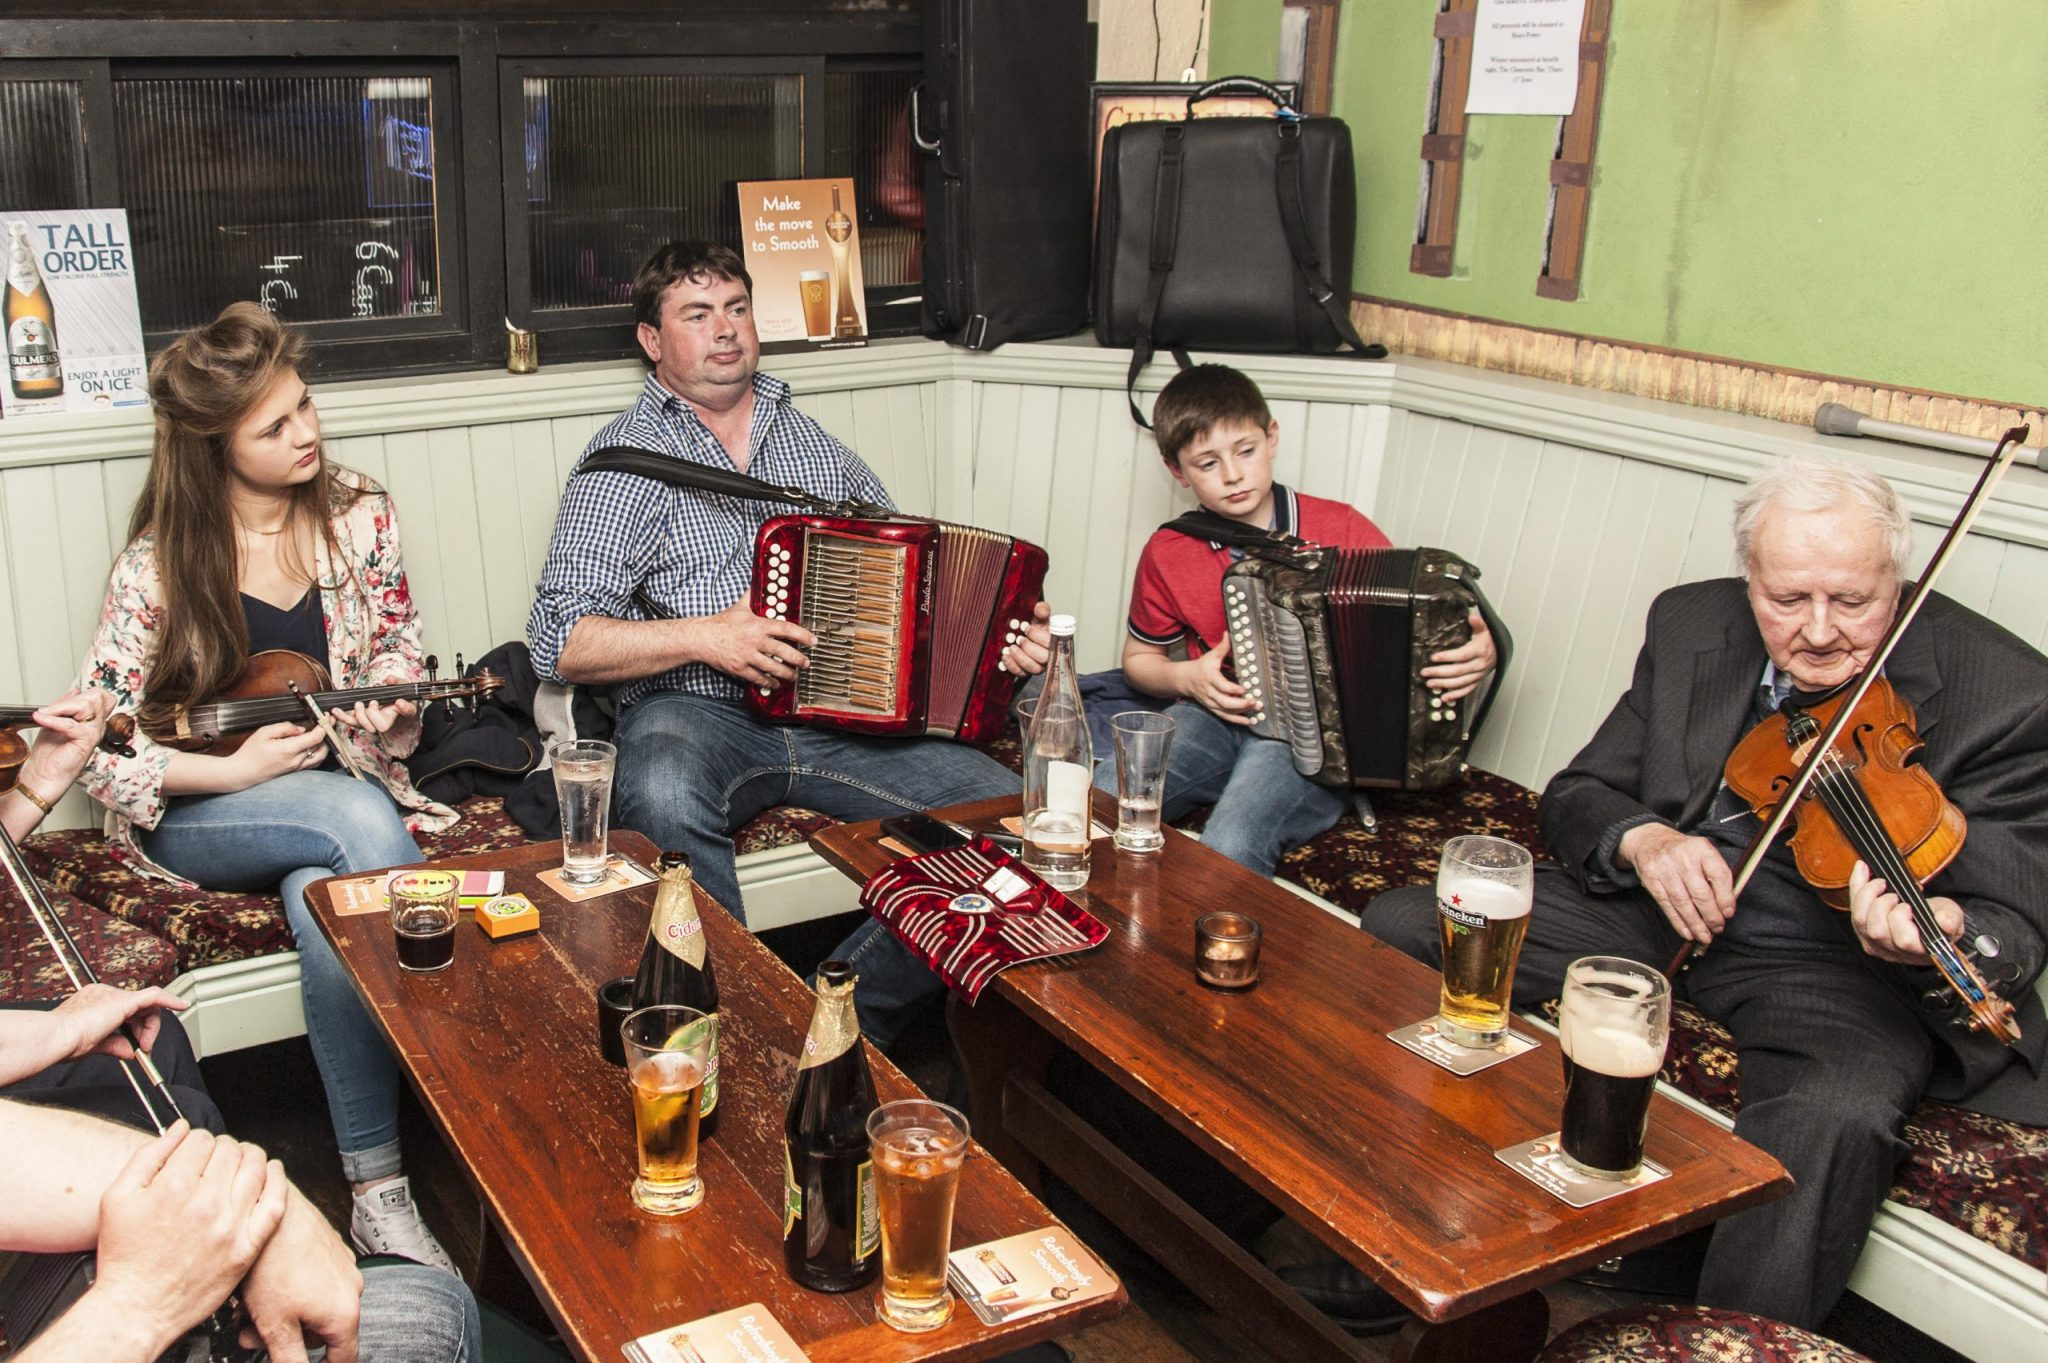 Irish bars and their thriving music scene